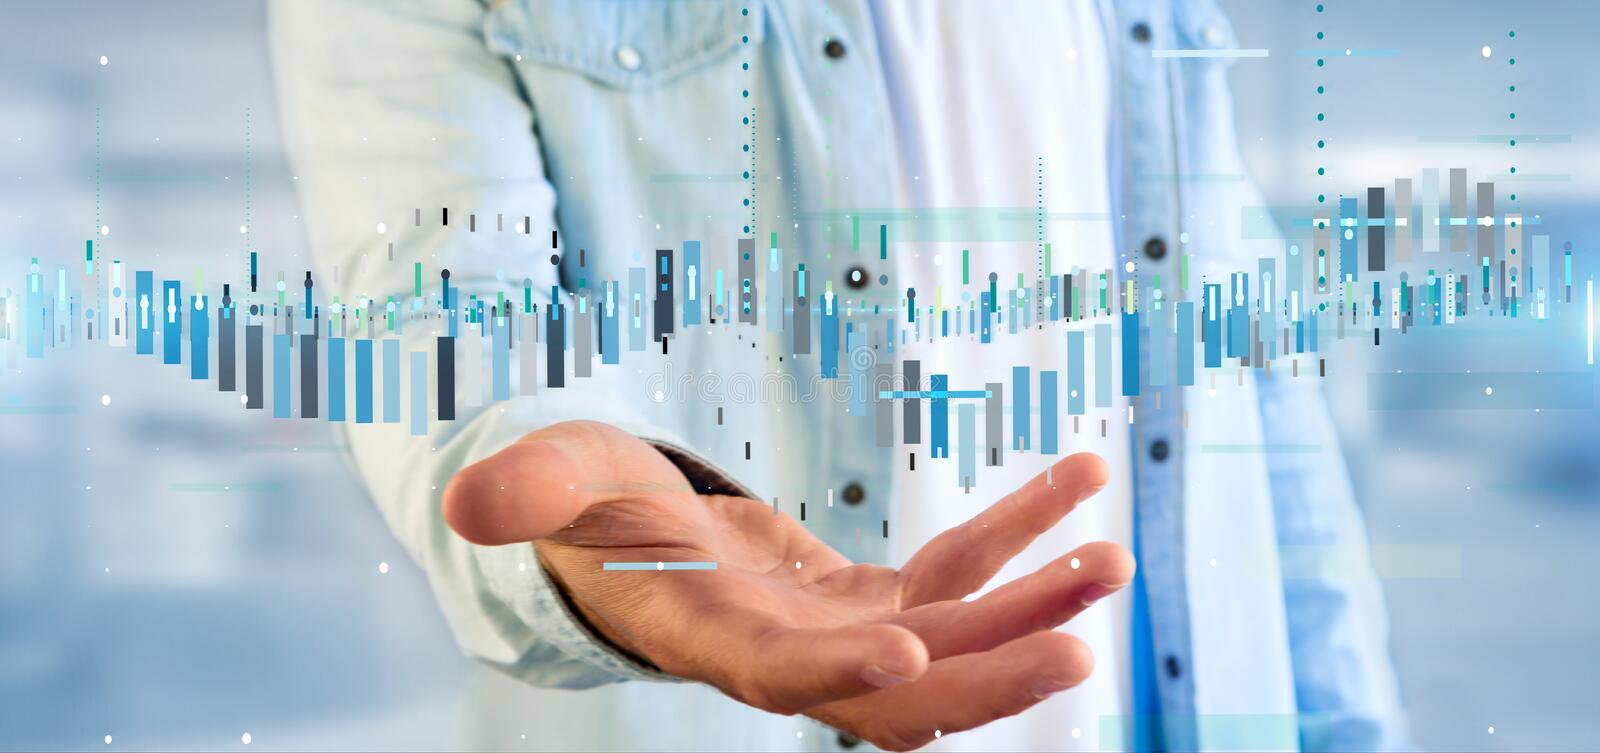 Man holding a Business stock exchange trading data information. View of a Man holding a Business stock exchange trading data information royalty free stock image